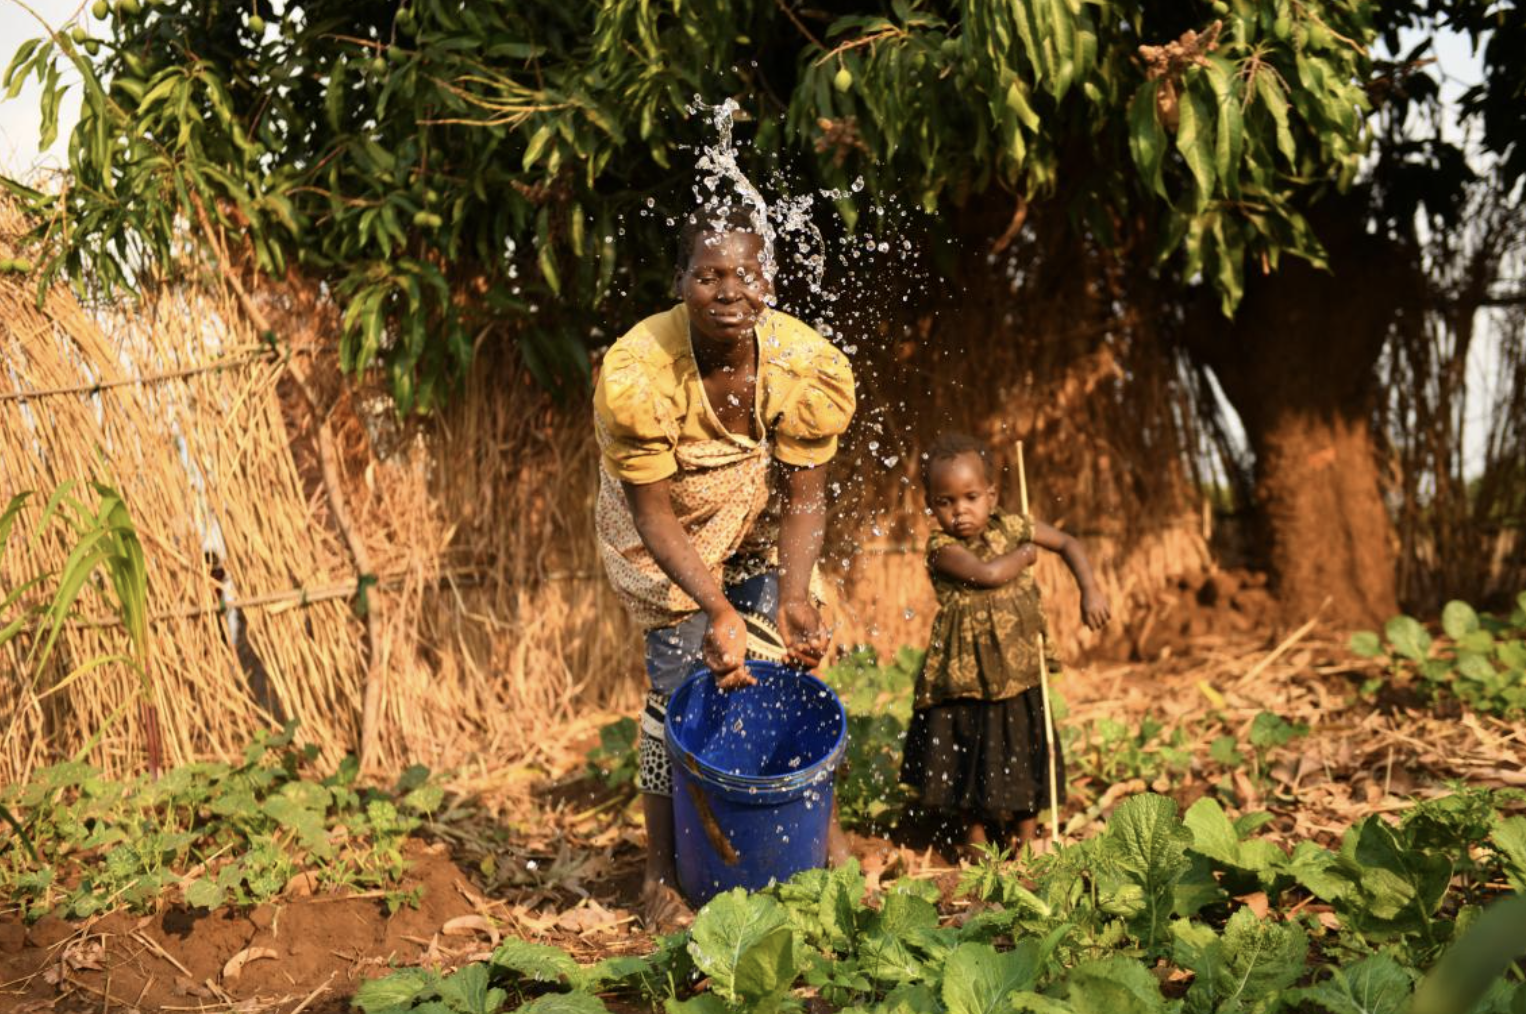 UNICEF Malawi/2020/Thoko Chikondi Sophie watering vegetables in her garden, beside her is her daughter